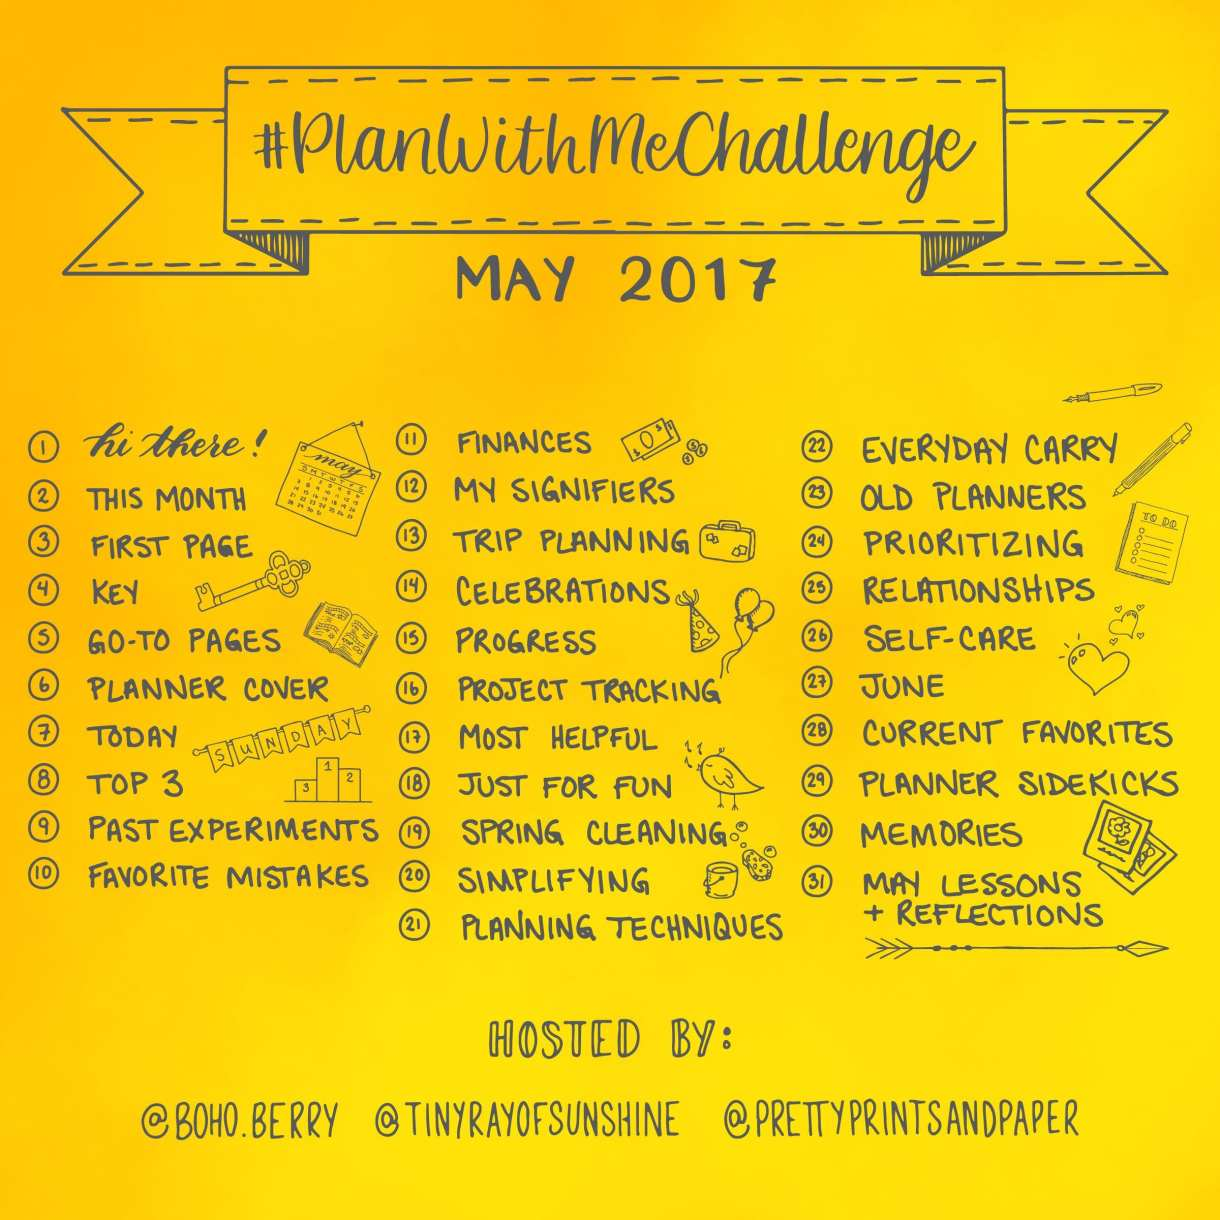 Join Kim (@TinyRayofSunshine), Kara (@Boho.Berry), and me (@prettyprintsandpaper) in another #PlanWithMeChallenge! Today I'll share how it works and how you can play along. Keep your new year energy going with this month's challenge!